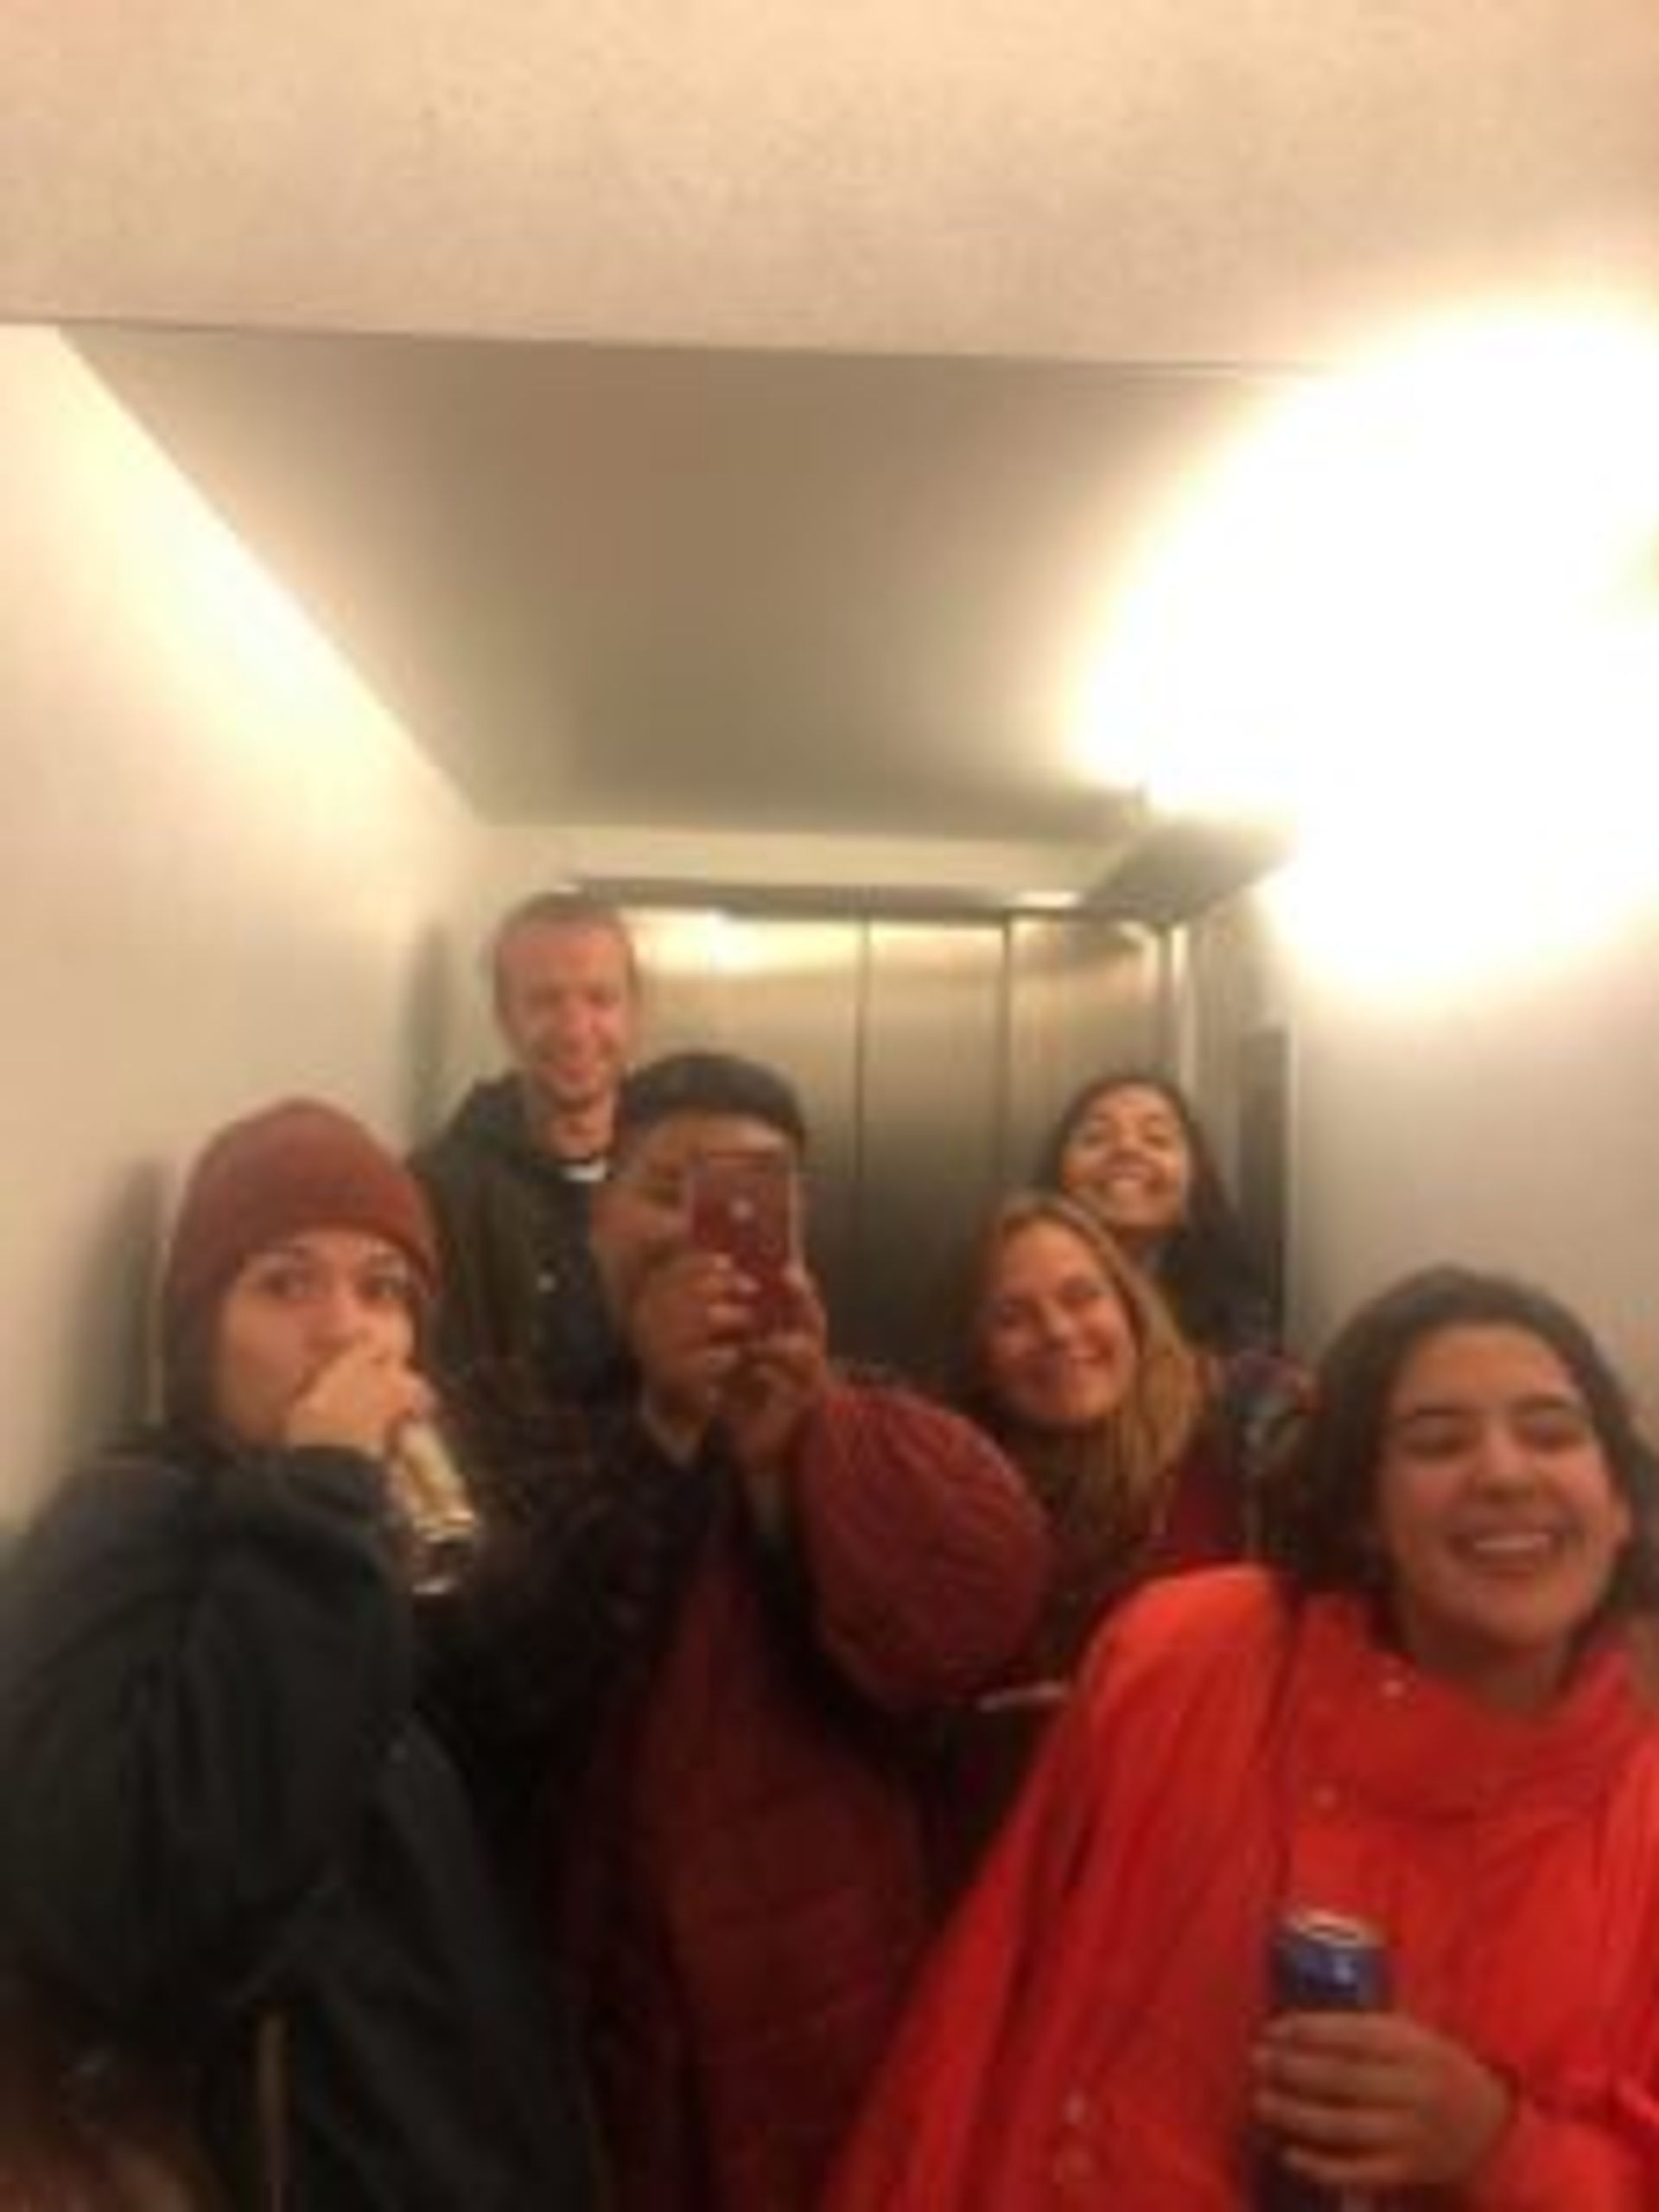 A group of people standing in a lift.